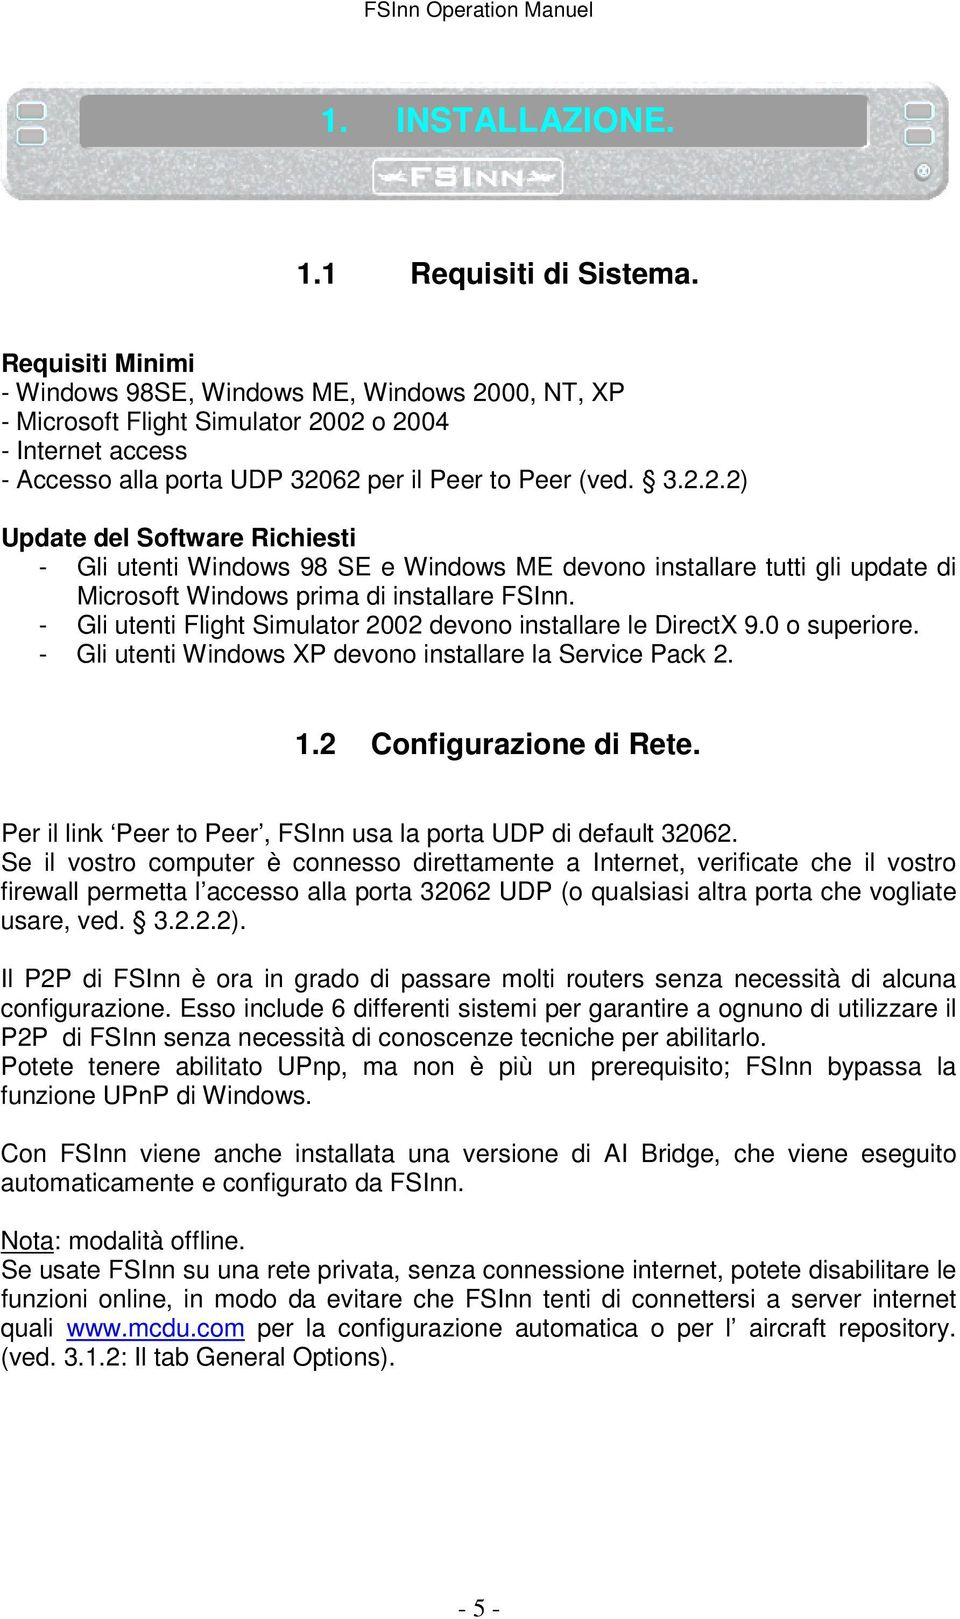 00, NT, XP - Microsoft Flight Simulator 2002 o 2004 - Internet access - Accesso alla porta UDP 32062 per il Peer to Peer (ved. 3.2.2.2) Update del Software Richiesti - Gli utenti Windows 98 SE e Windows ME devono installare tutti gli update di Microsoft Windows prima di installare FSInn.